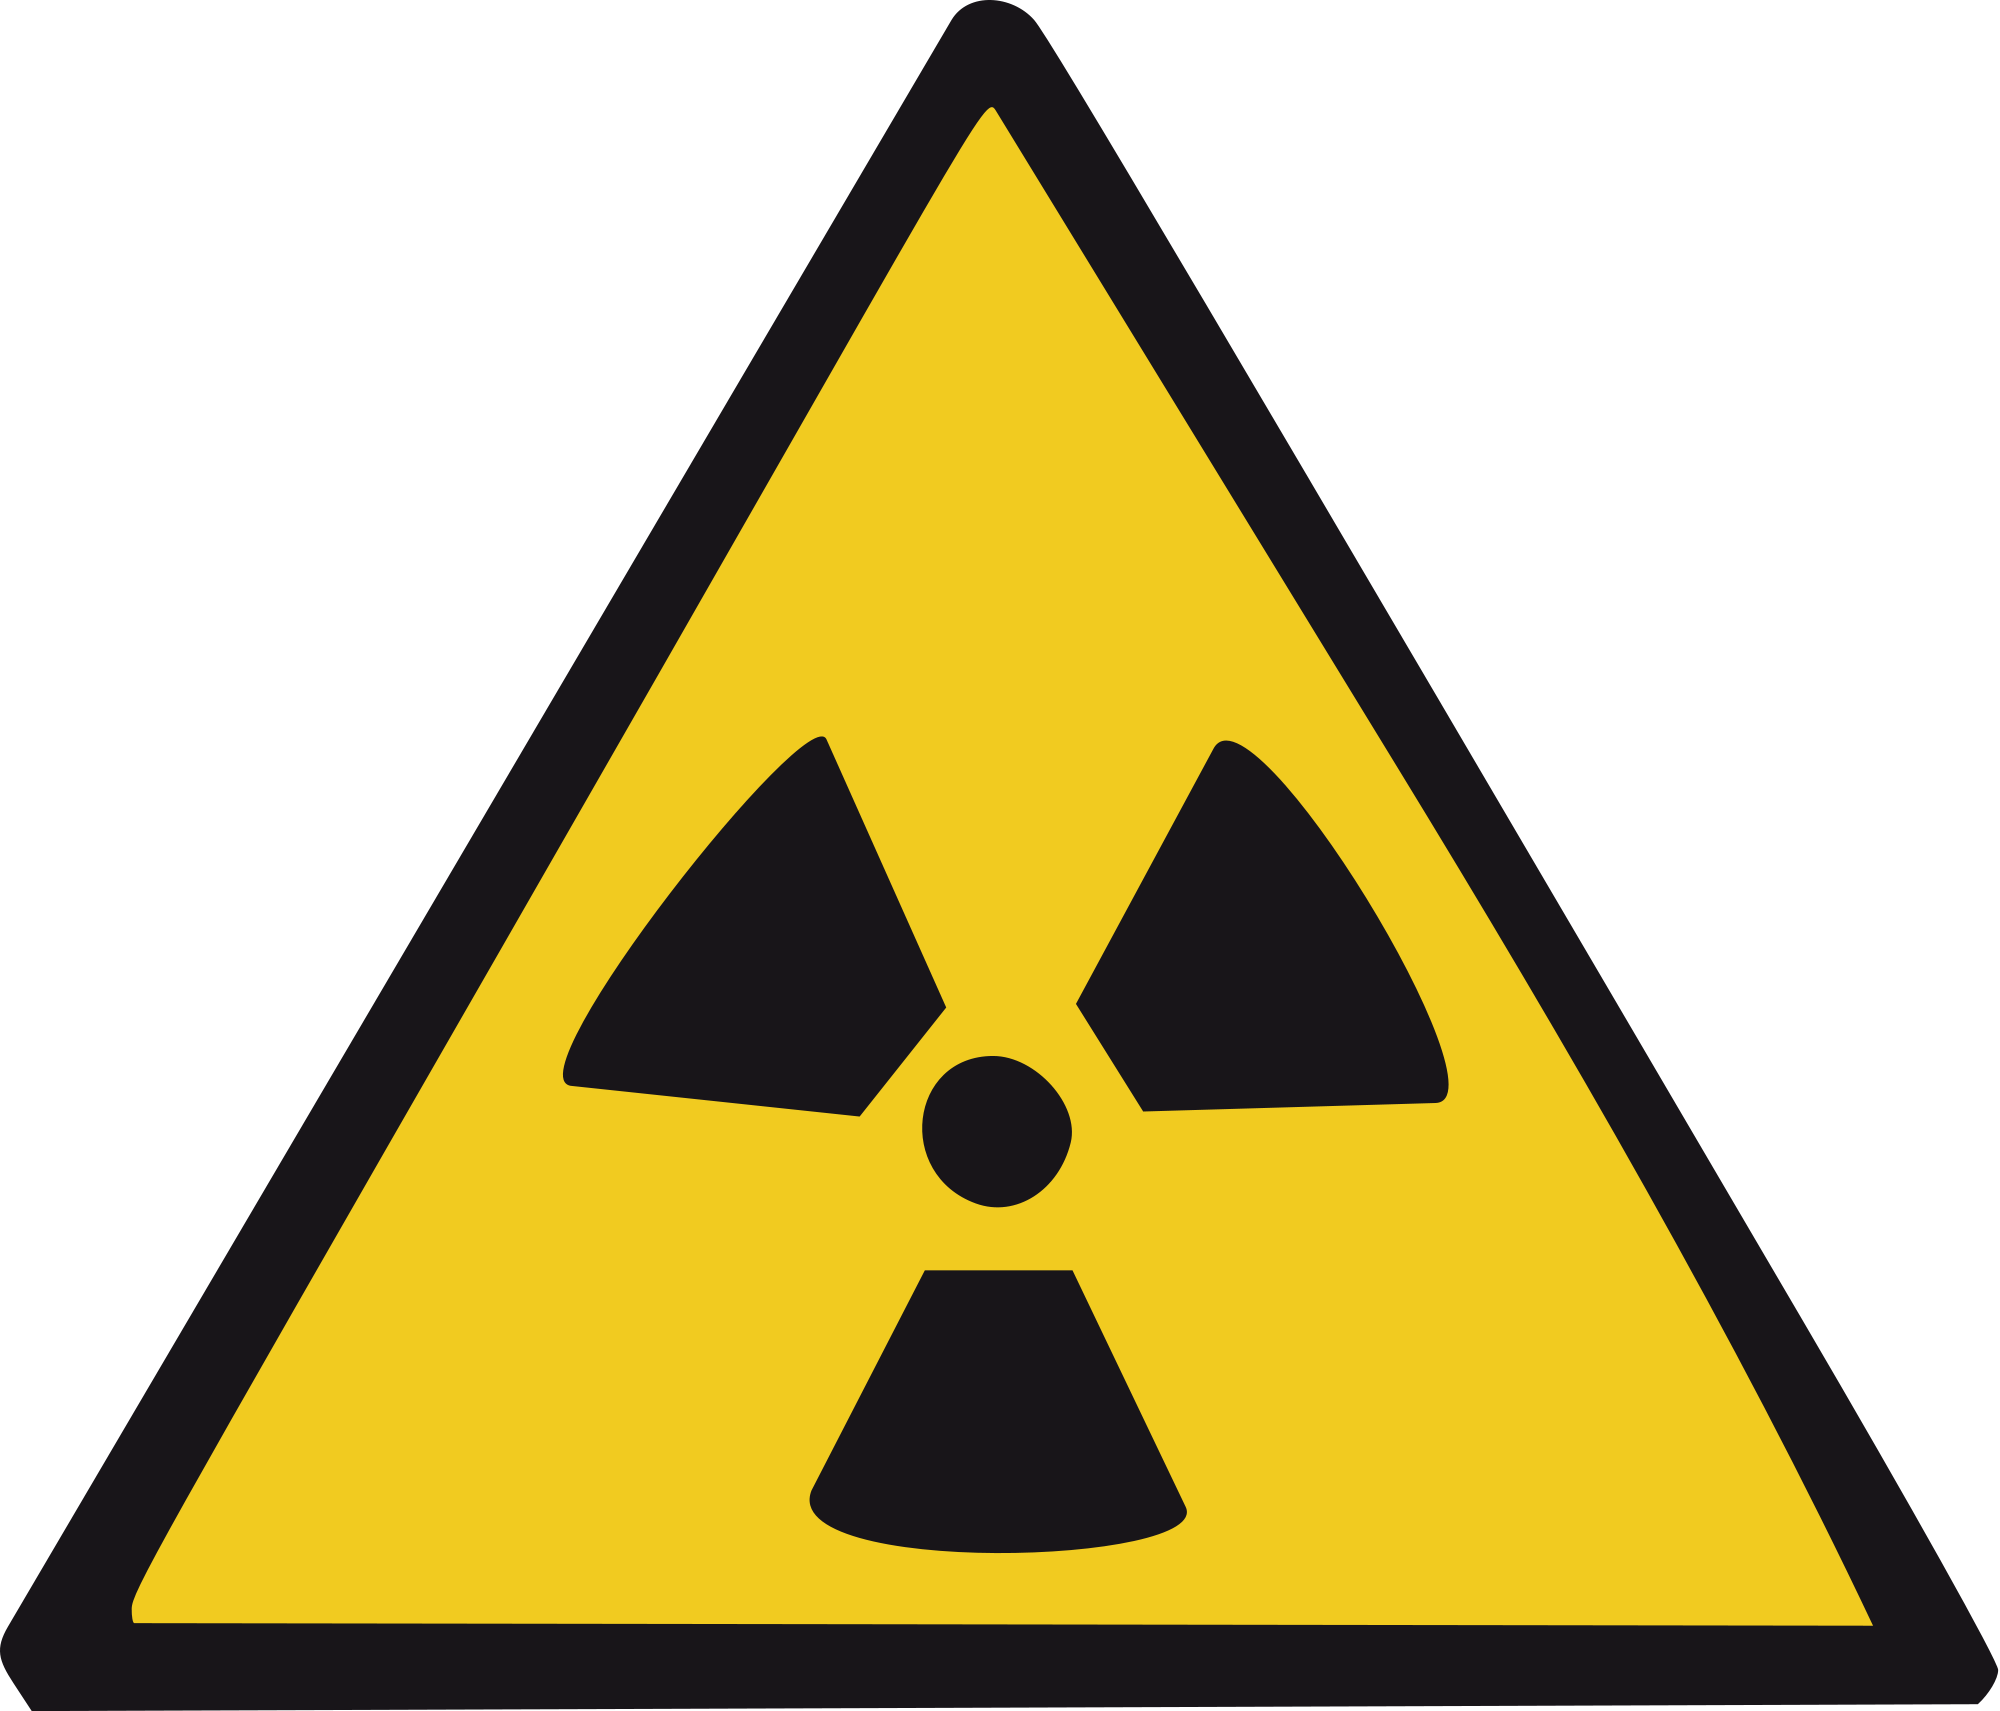 Lab clipart lab safety. Danger in the laboratory